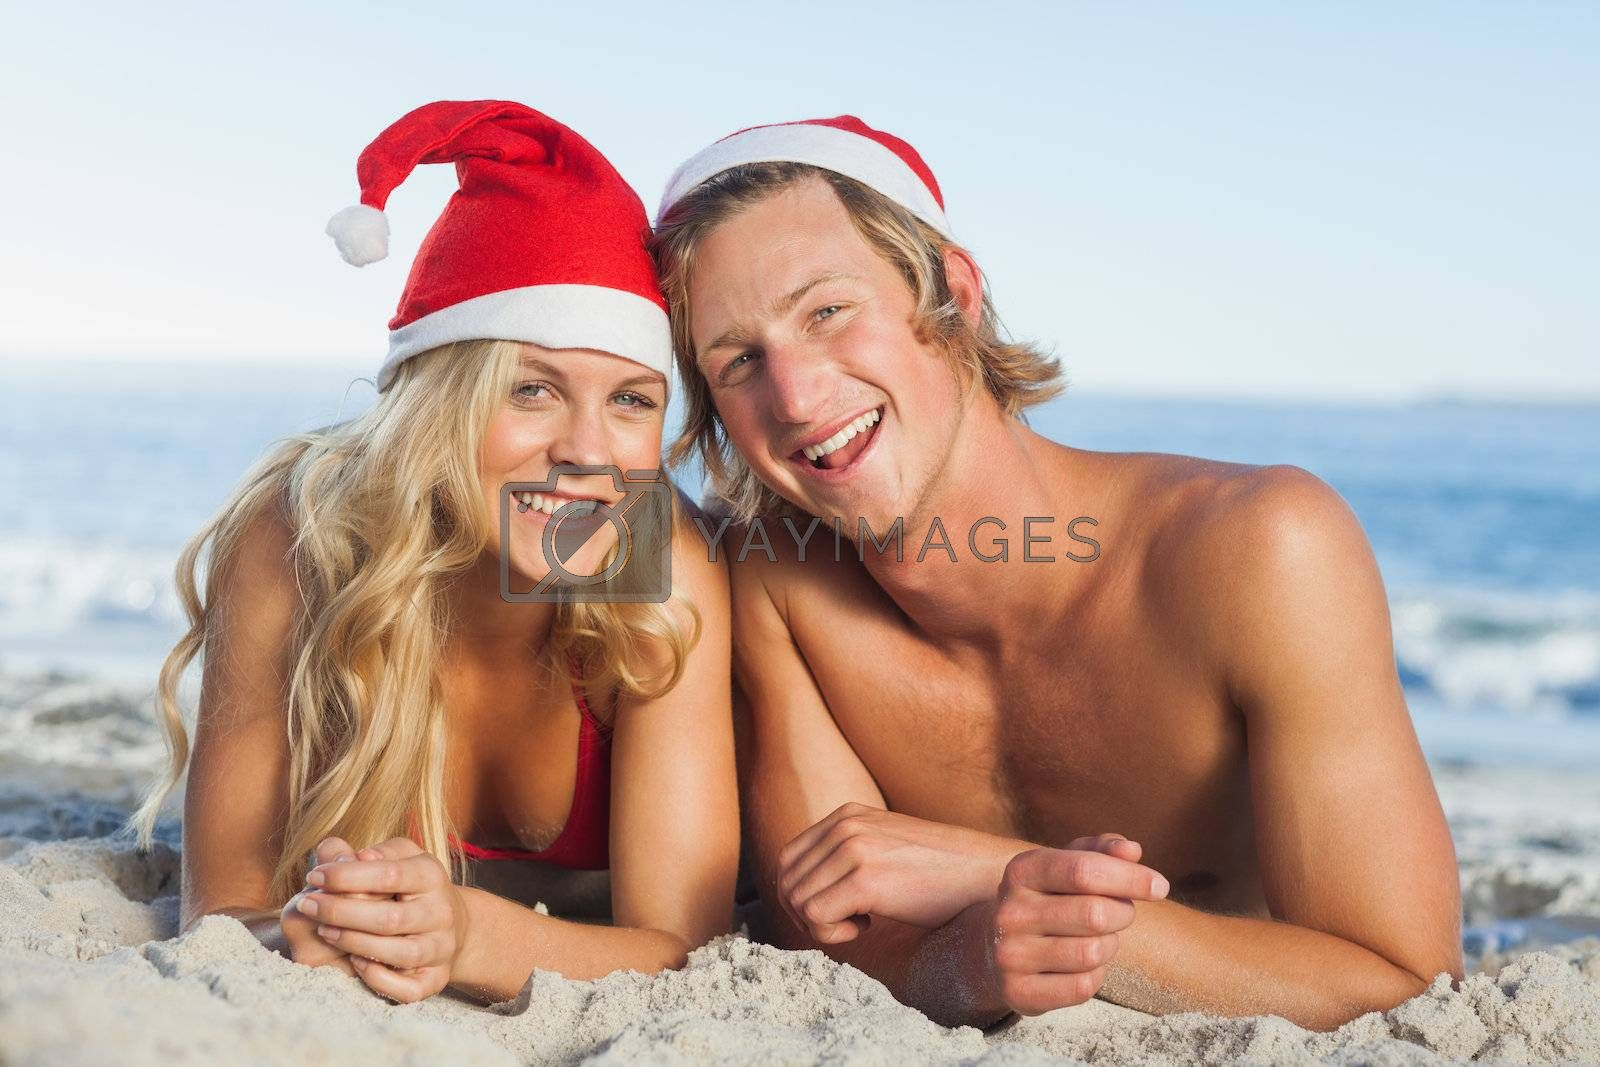 Couple lying on beach wearing christmas hats by Wavebreakmedia